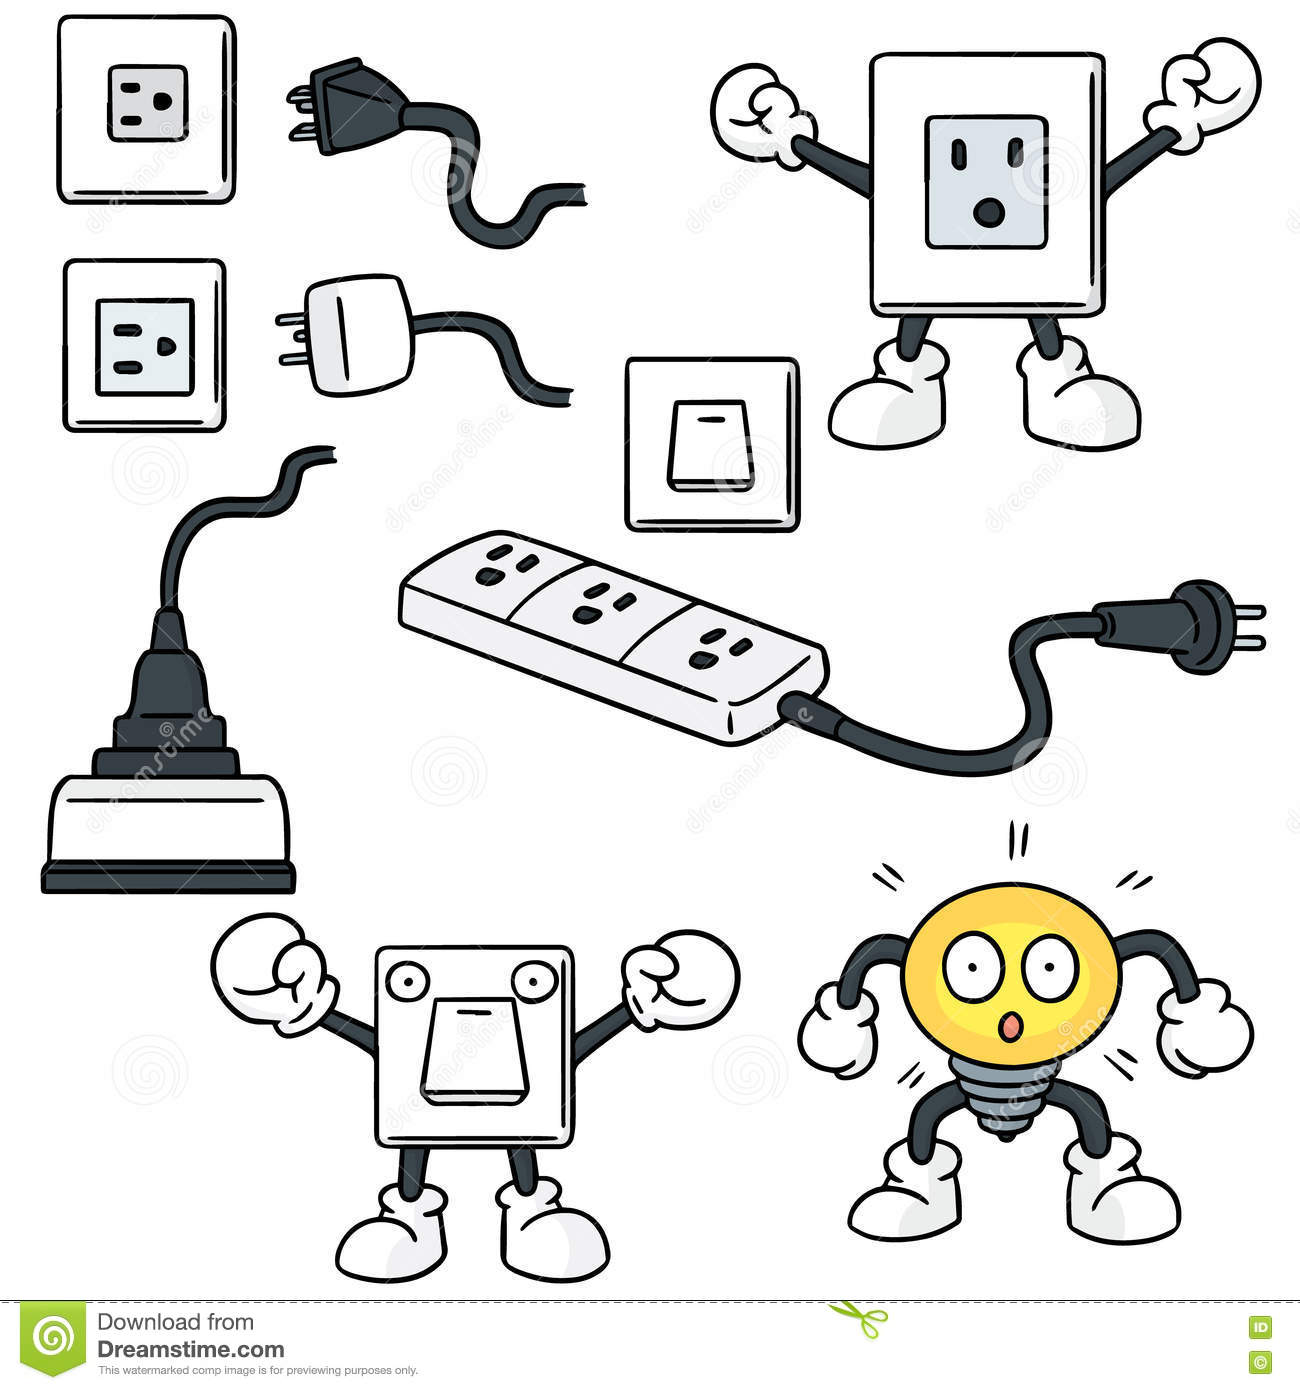 hight resolution of electric switch and plug